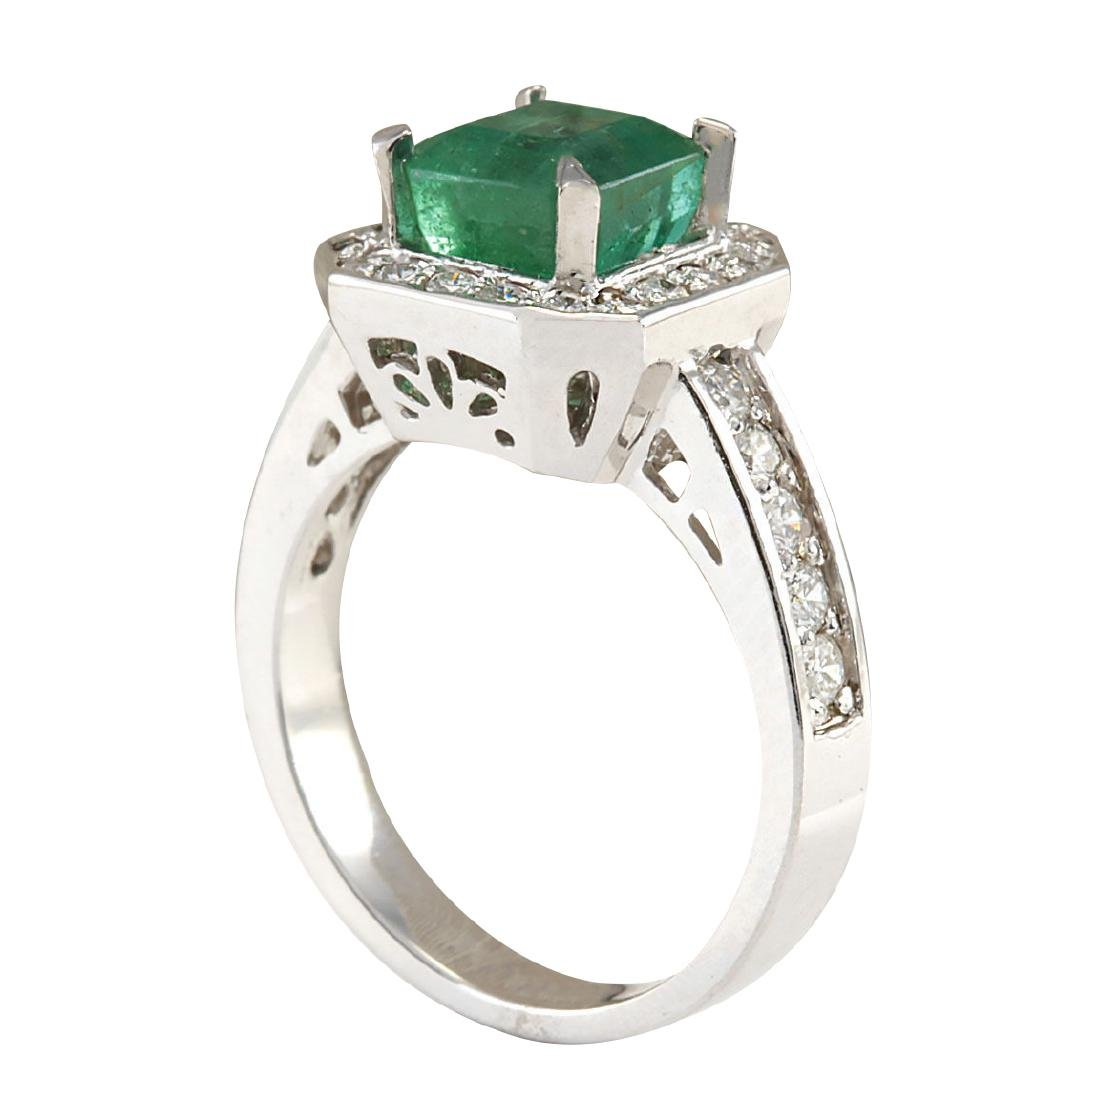 3.32CTW Natural Emerald And Diamond Ring In 18K White - 3